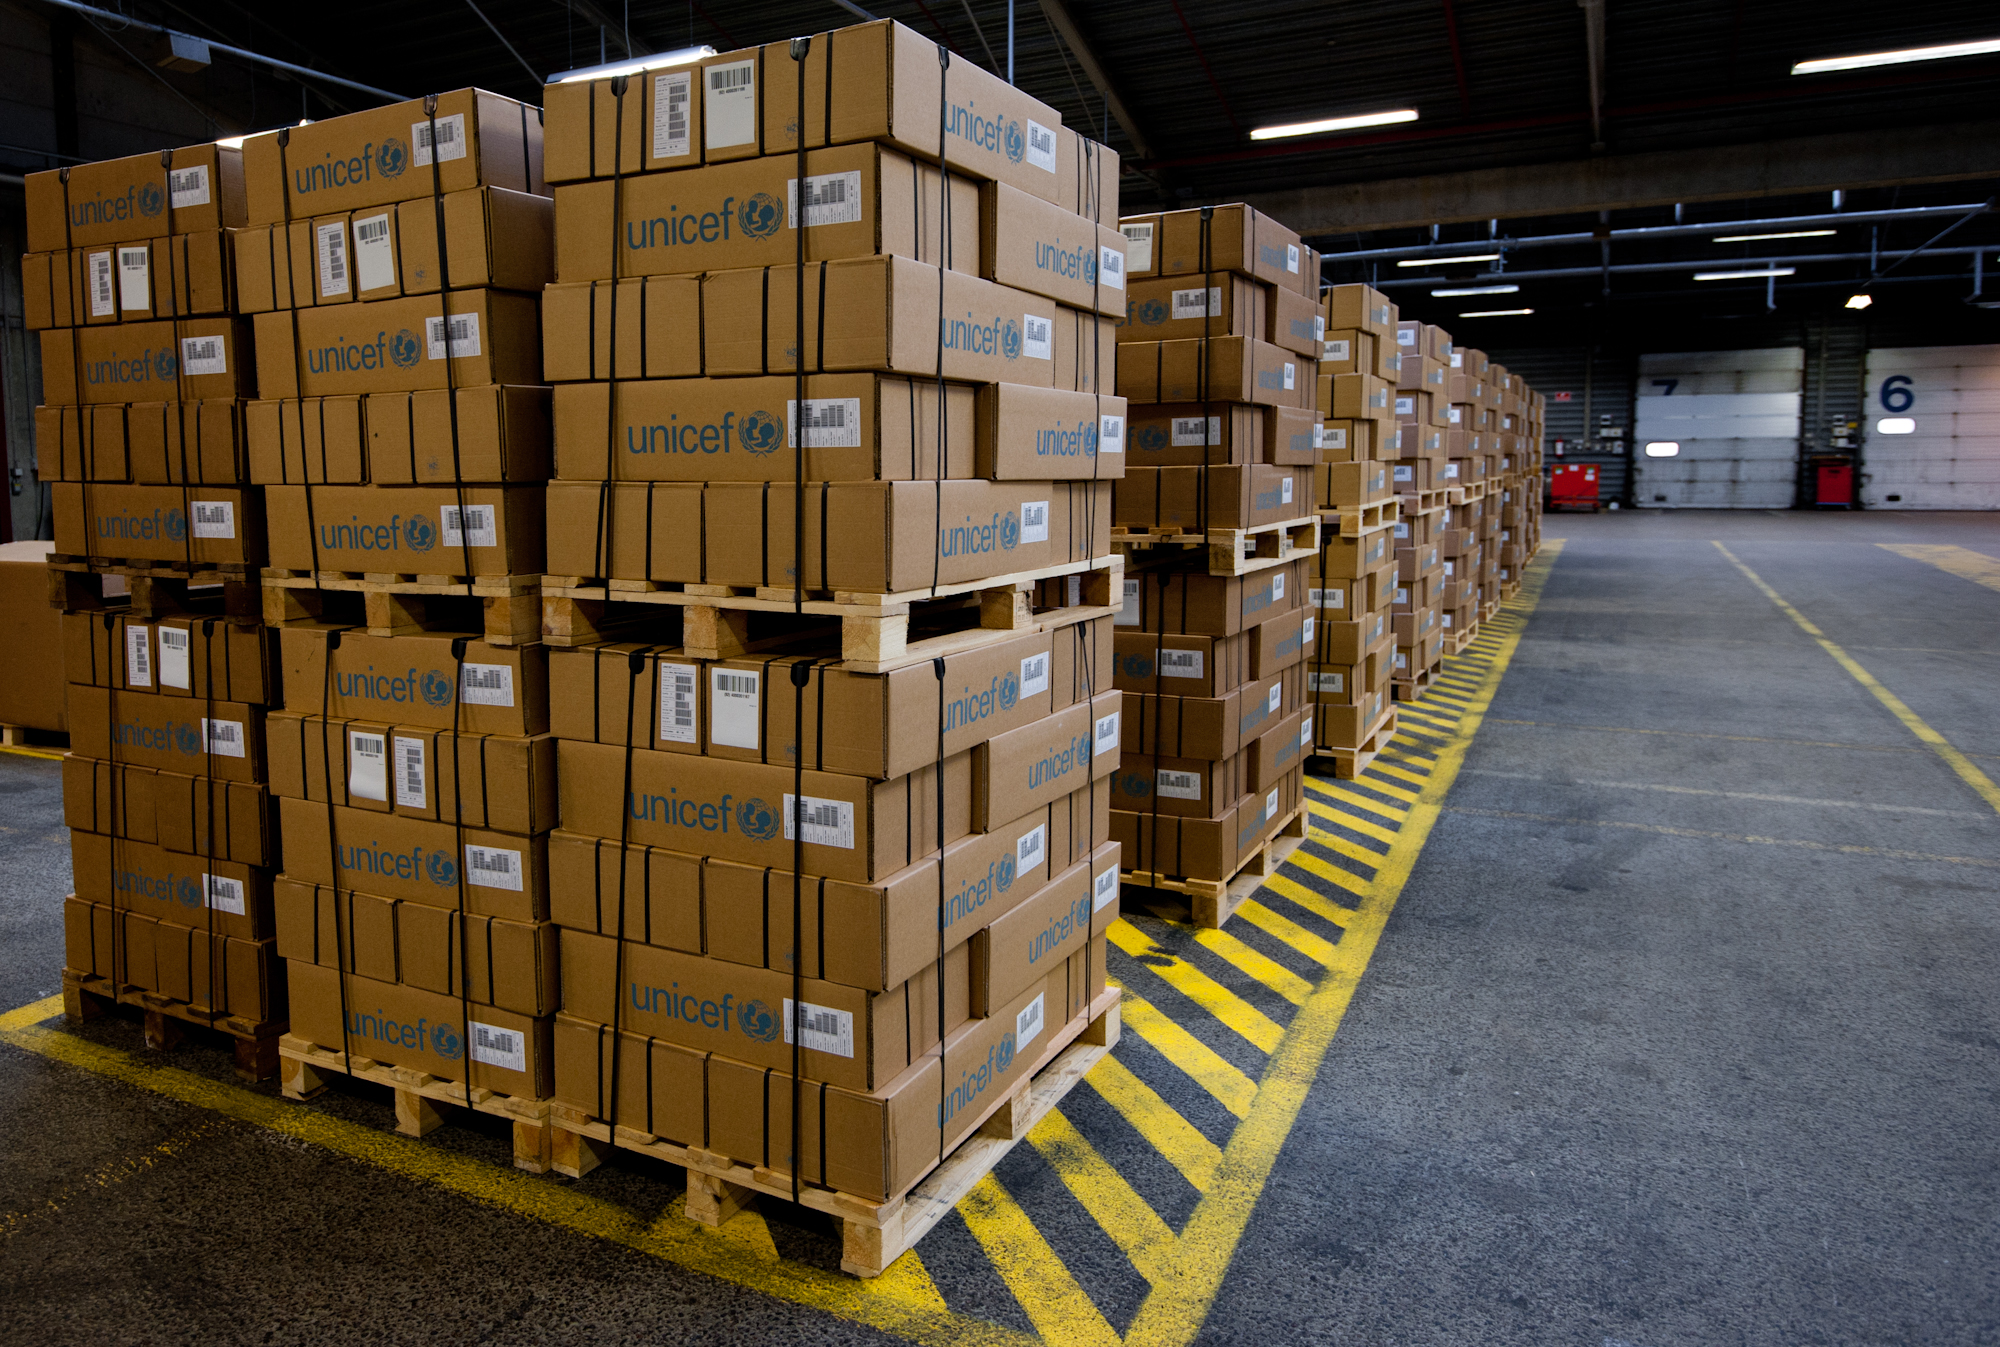 Pallets ready for shipping at the UNICEF world warehouse in Copenhagen.